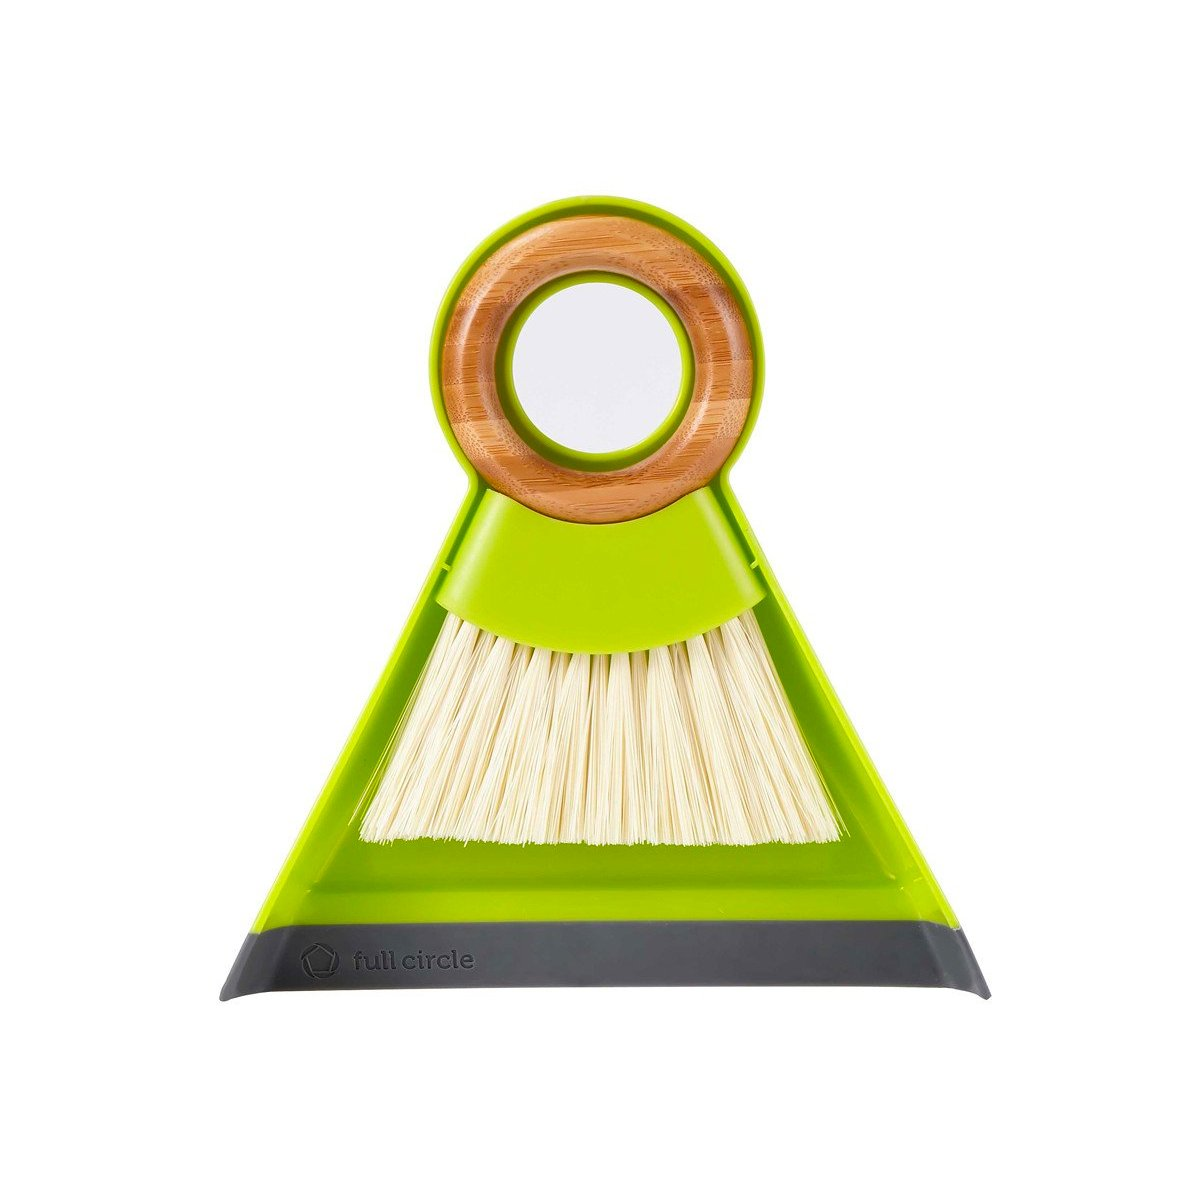 Full Circle Tiny Team Mini Dustpan and Brush Set Full Circle Household Cleaning Supplies at Little Earth Nest Eco Shop